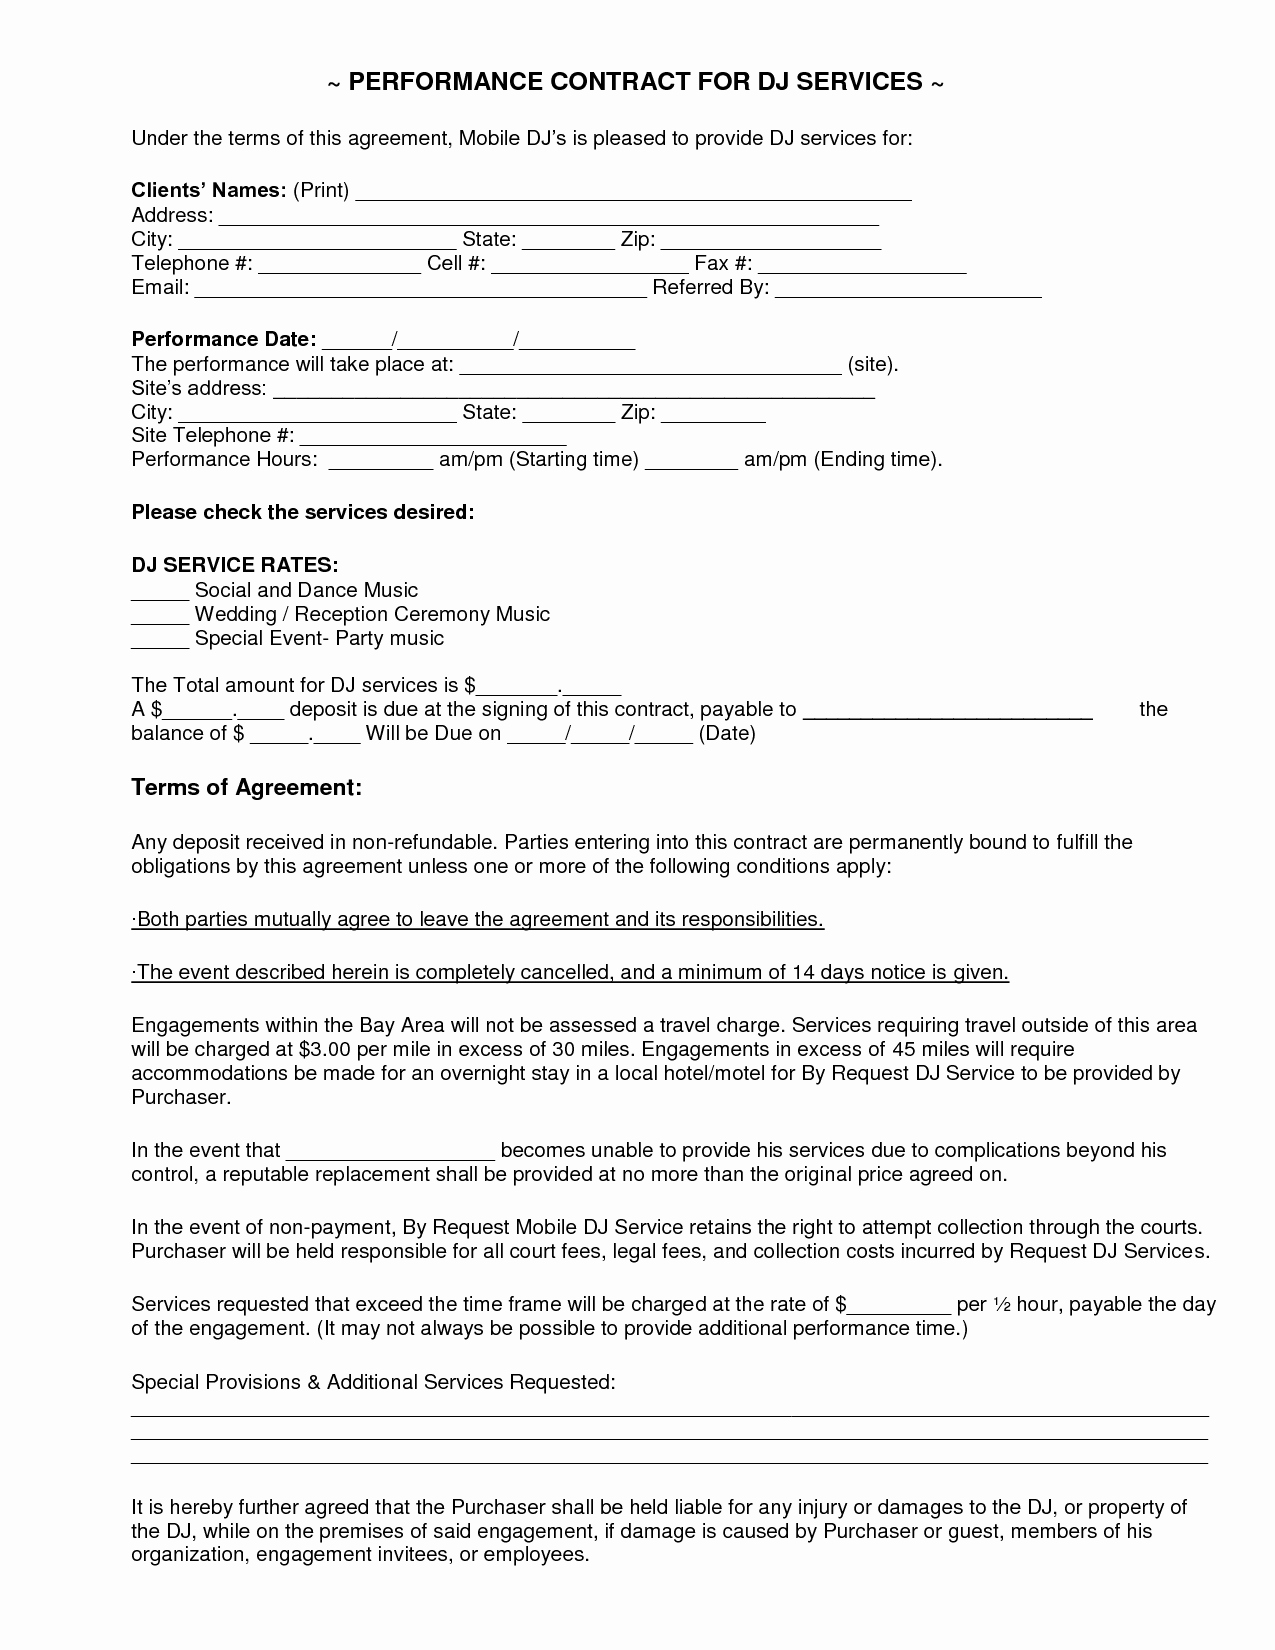 Free Dj Contract Template New Mobile Dj Contract